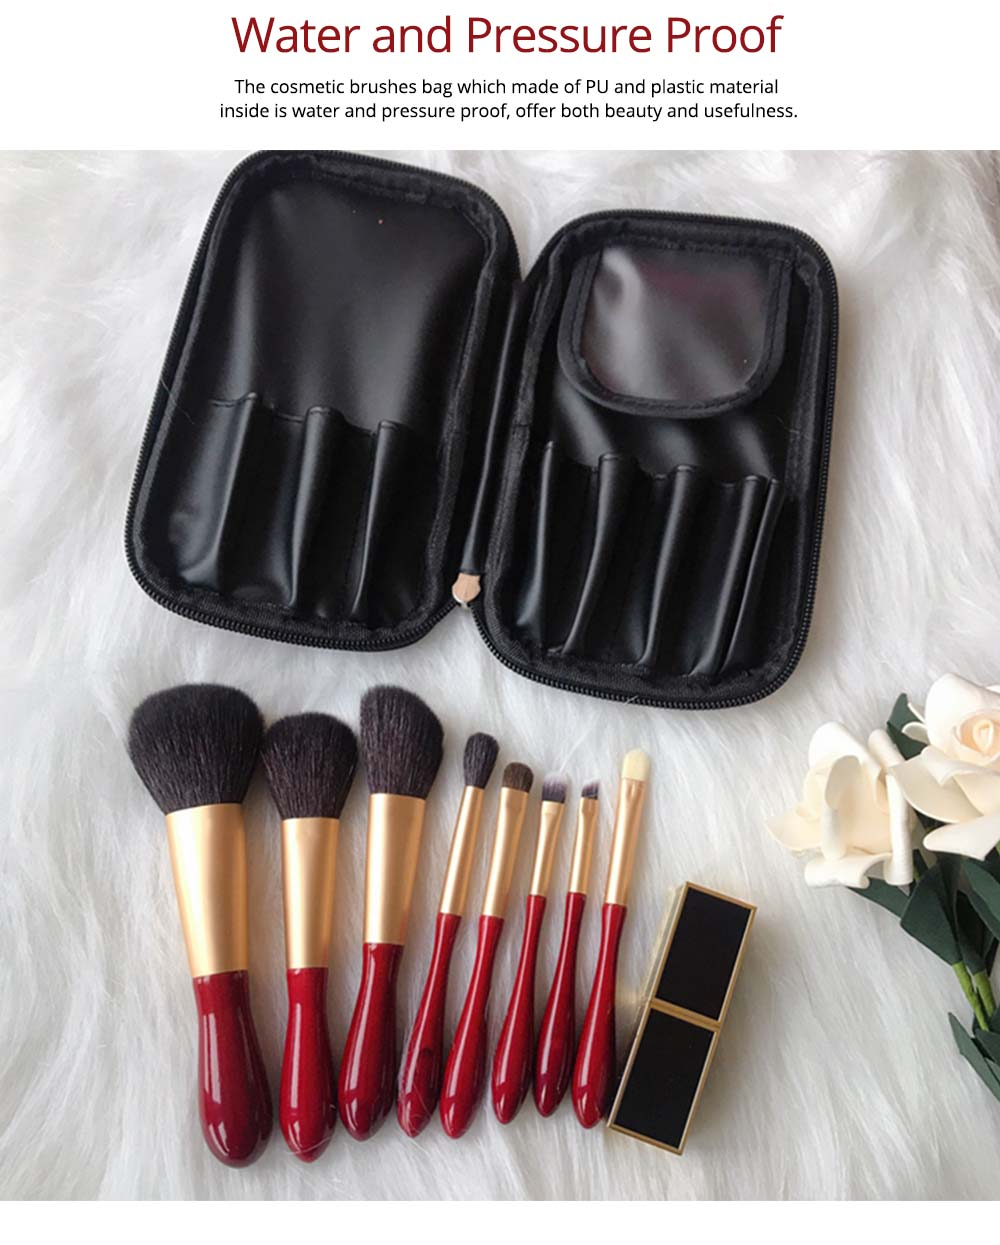 8pcs Red Glaze Makeup Brushes Soft Cosmetic Eyebrow Shadow Brush Tool Set with Bag for Freshman of Makeup 4